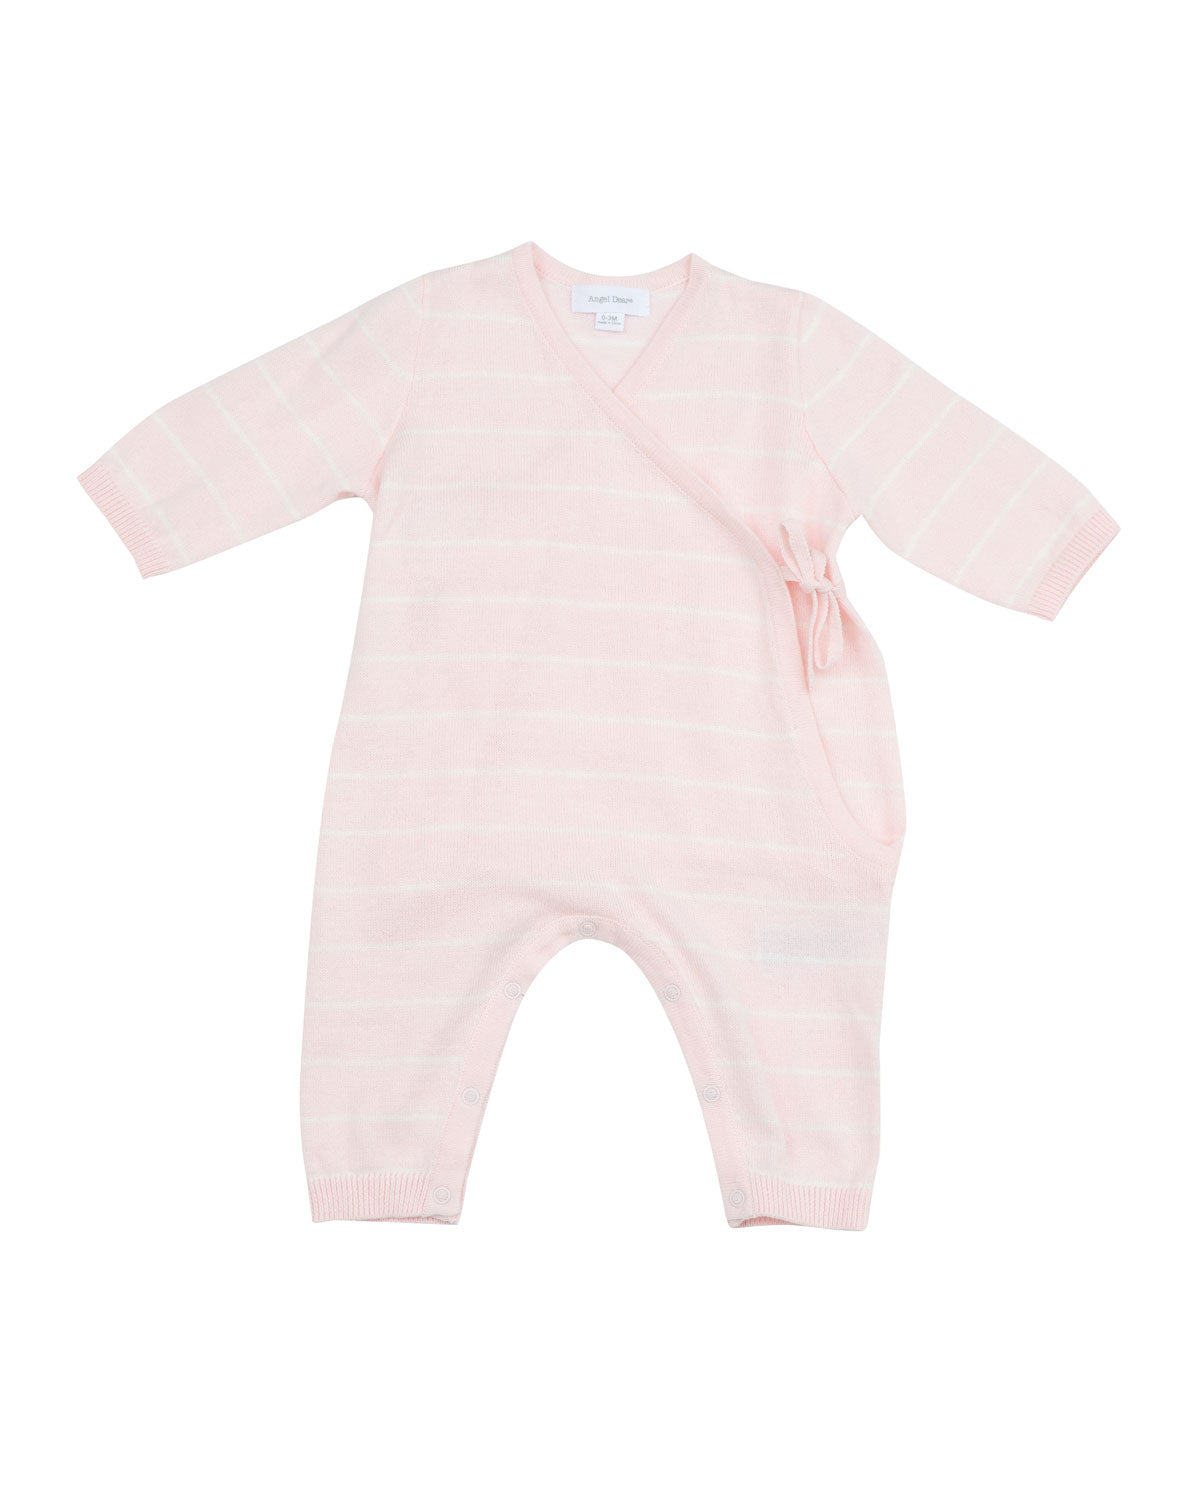 Angel Dear - Euro Knit Kimono Wrap Romper - Light Pink